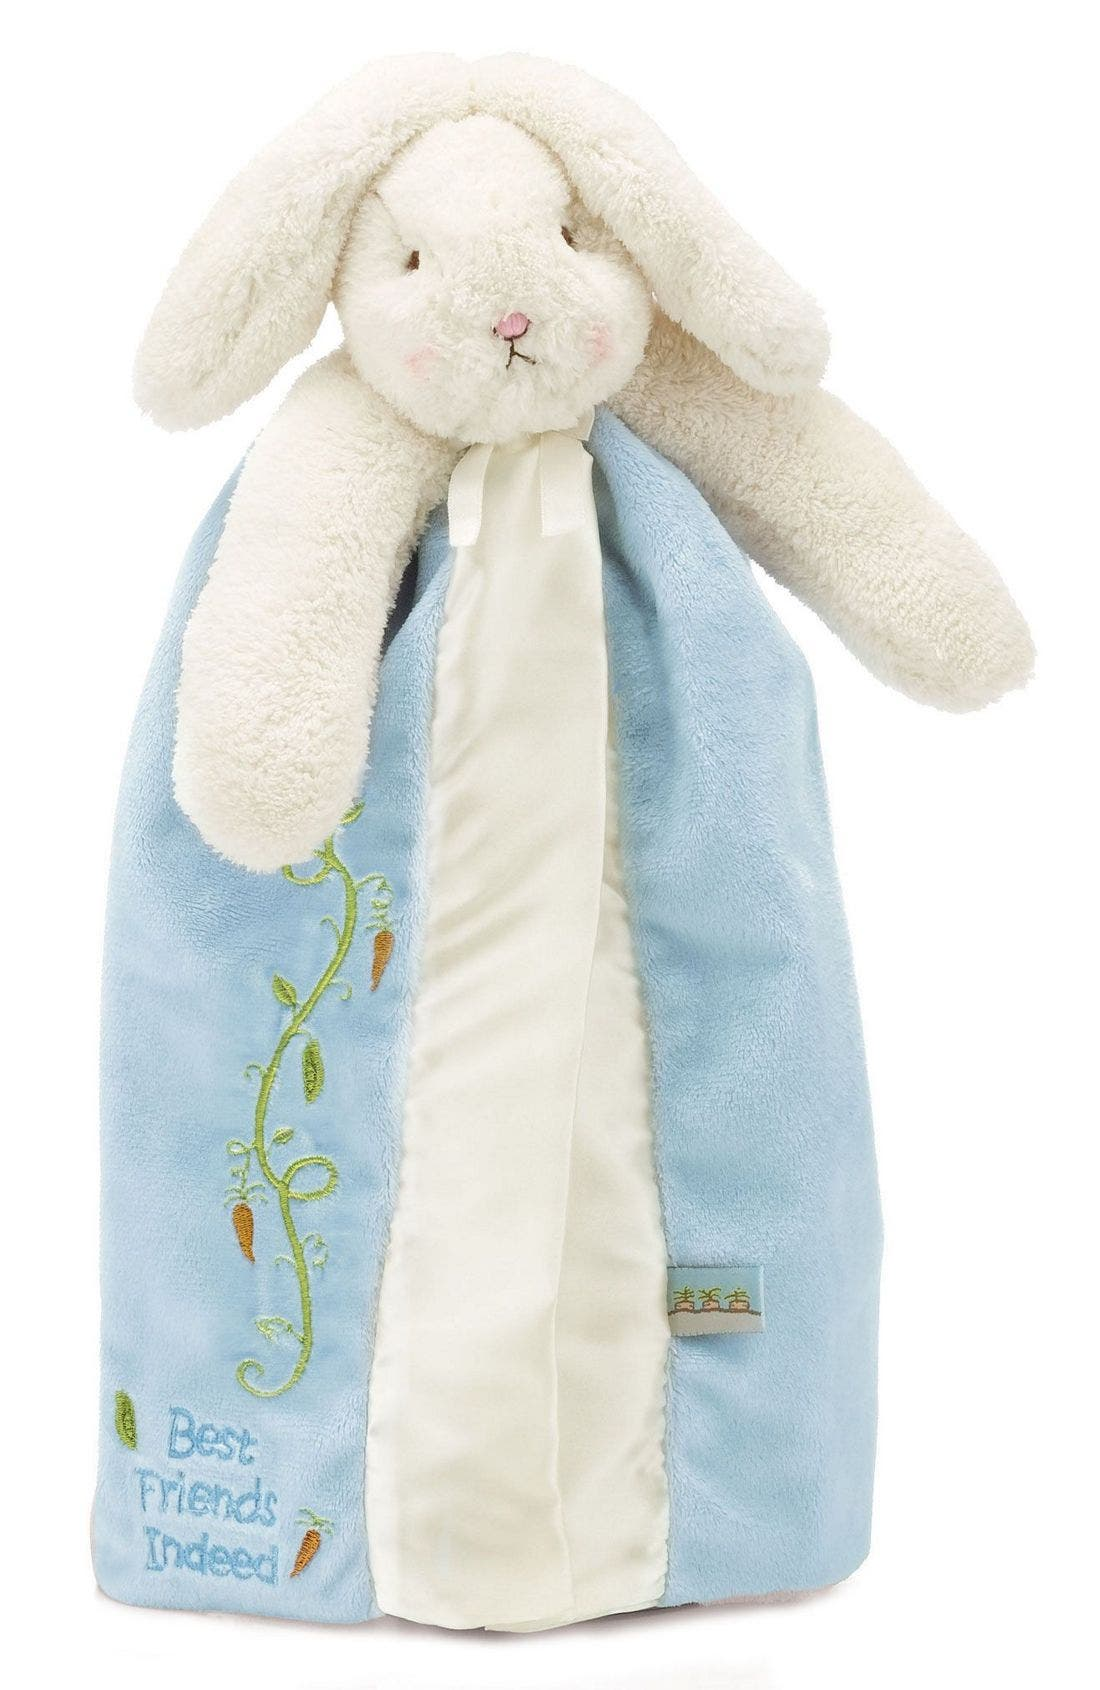 Main Image - Bunnies by the Bay Buddy Blanket